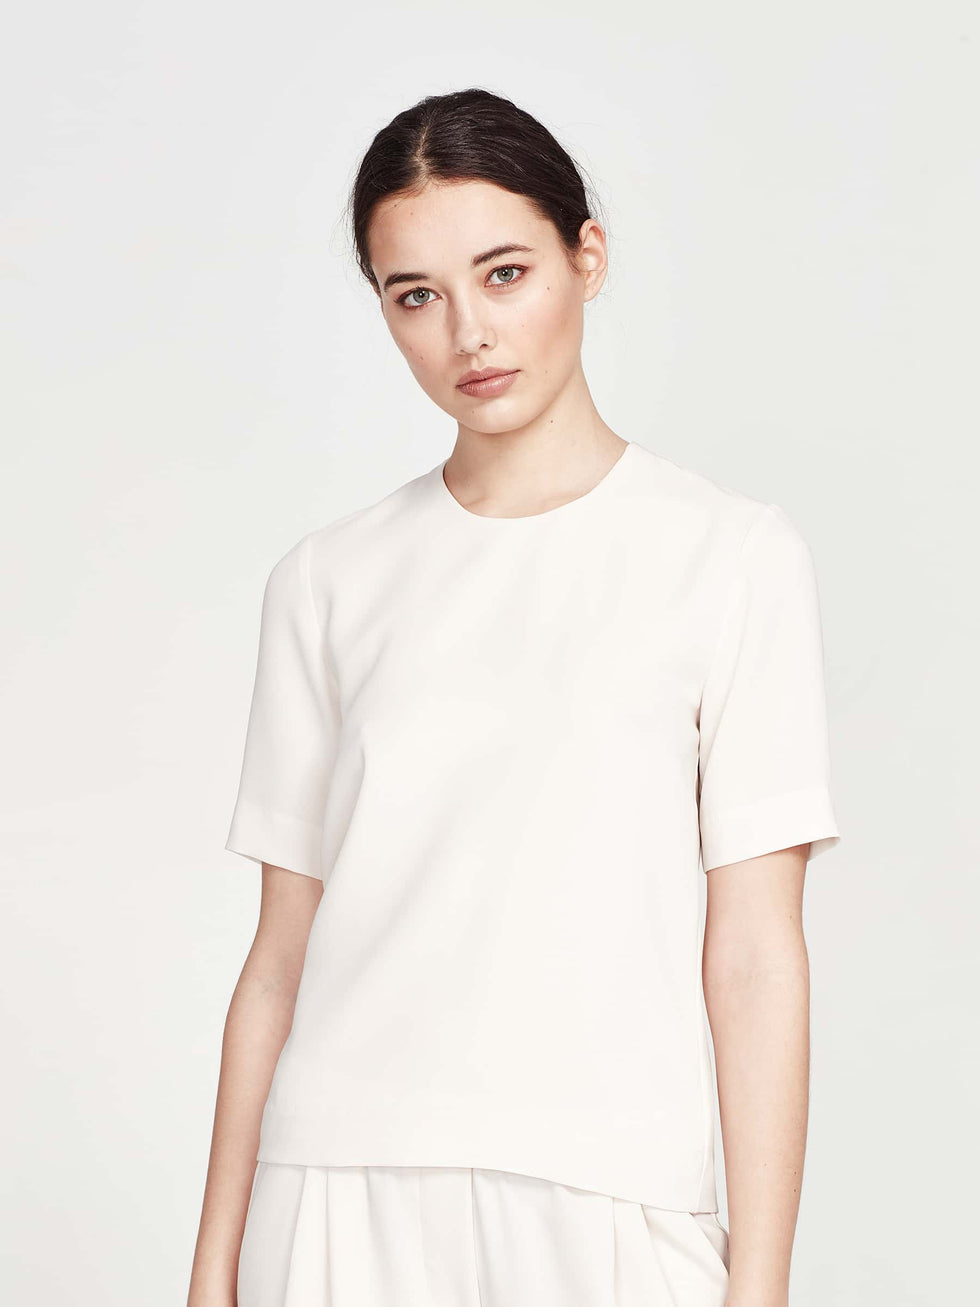 Wolfe Tri T (Luxe Triacetate) Cloud